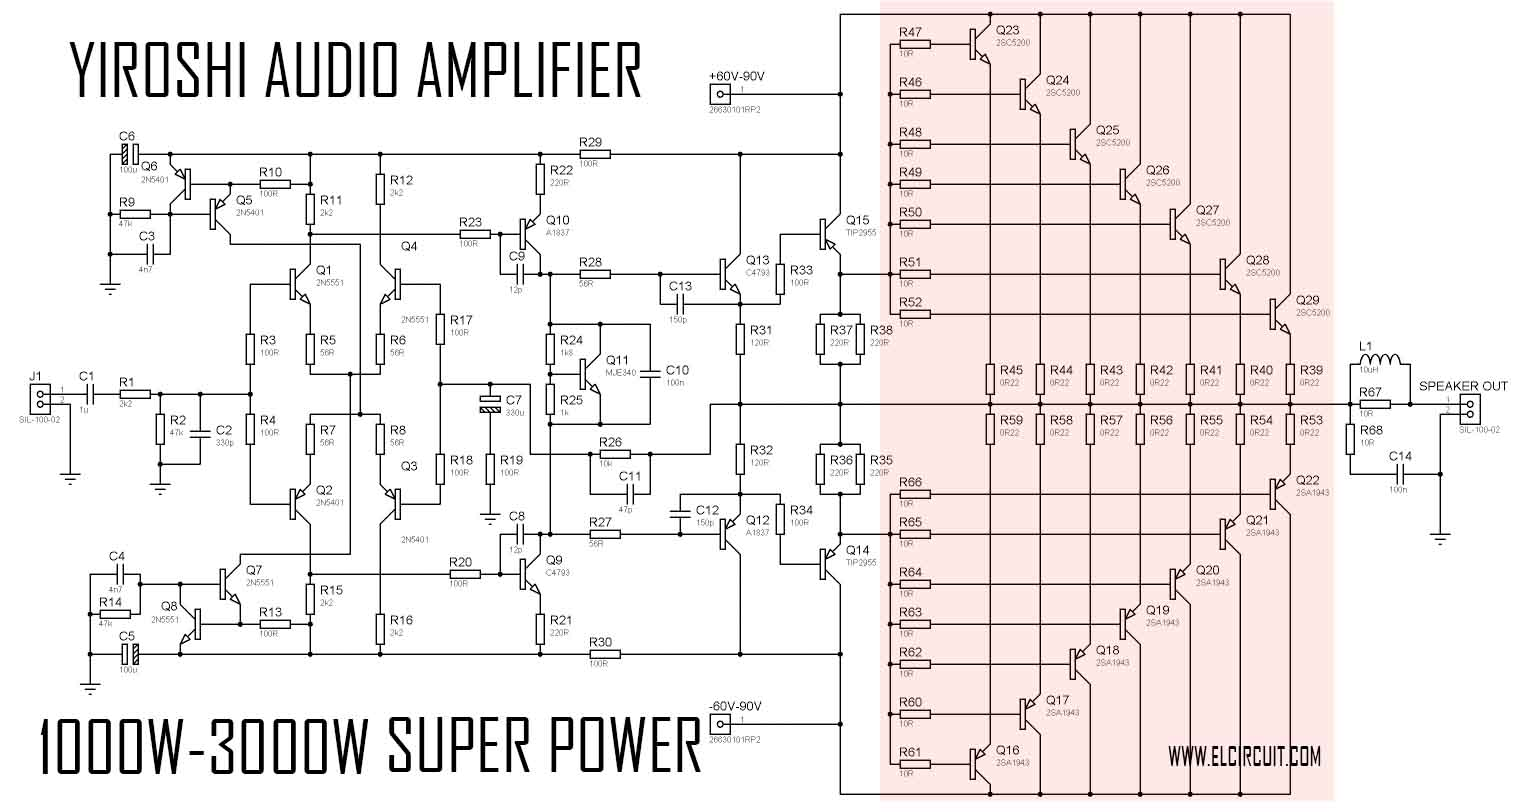 dc12v audio 1000w amplifier circuit diagrams wiring diagram view dc12v audio 1000w amplifier circuit diagrams [ 1520 x 812 Pixel ]